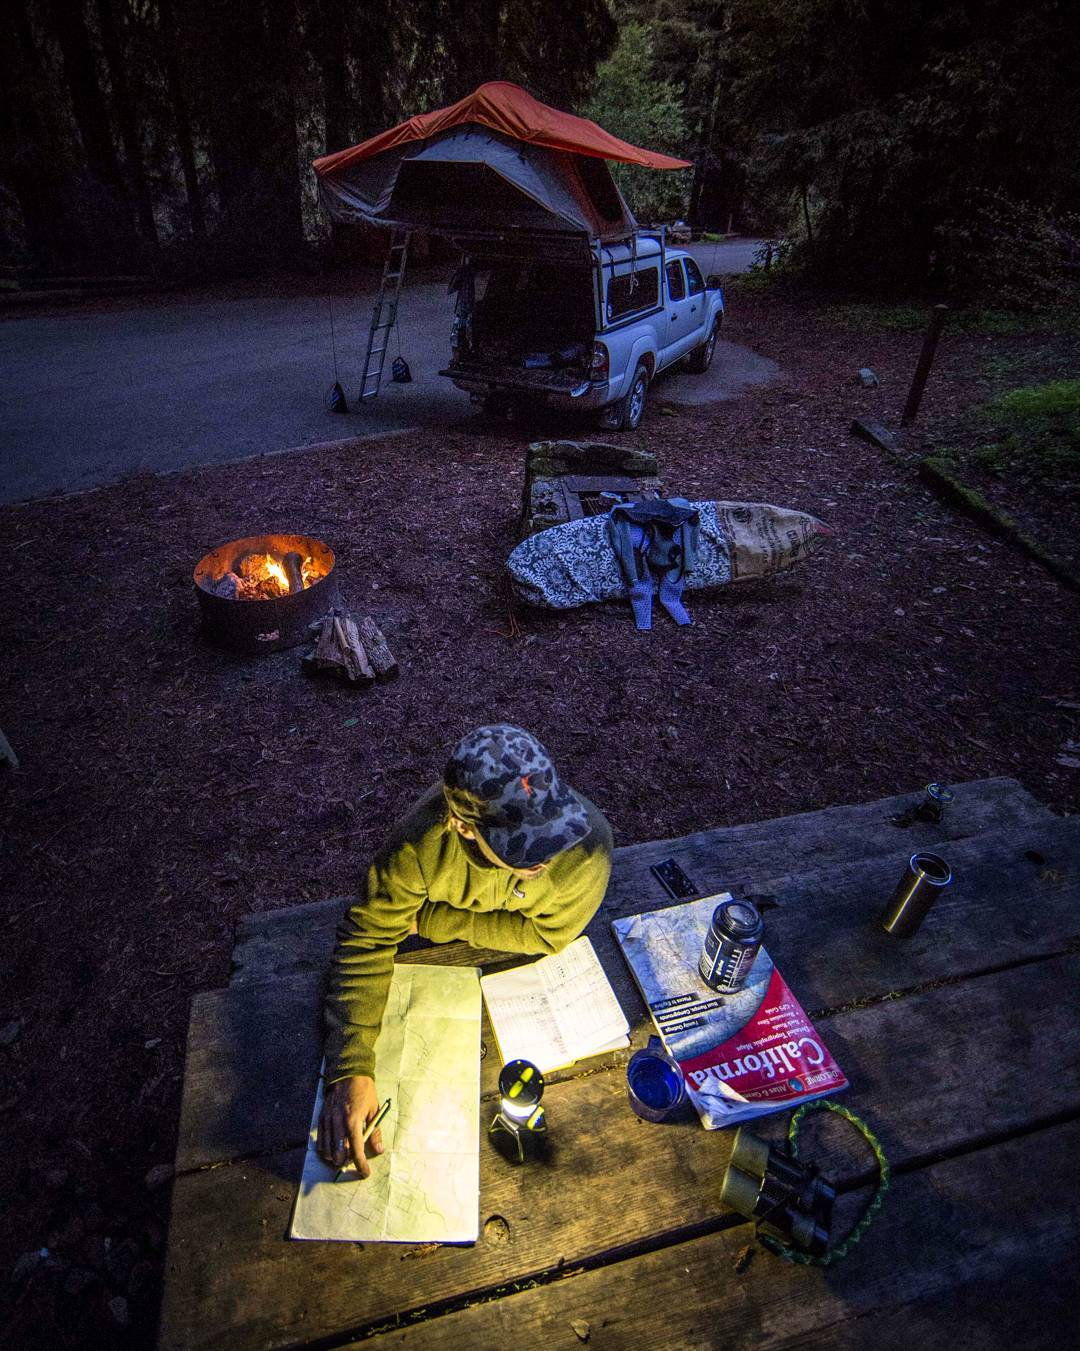 @charles_post and the Lighthouse Mini taking some time in camp to make plans and review notes. #GetOutStayOut